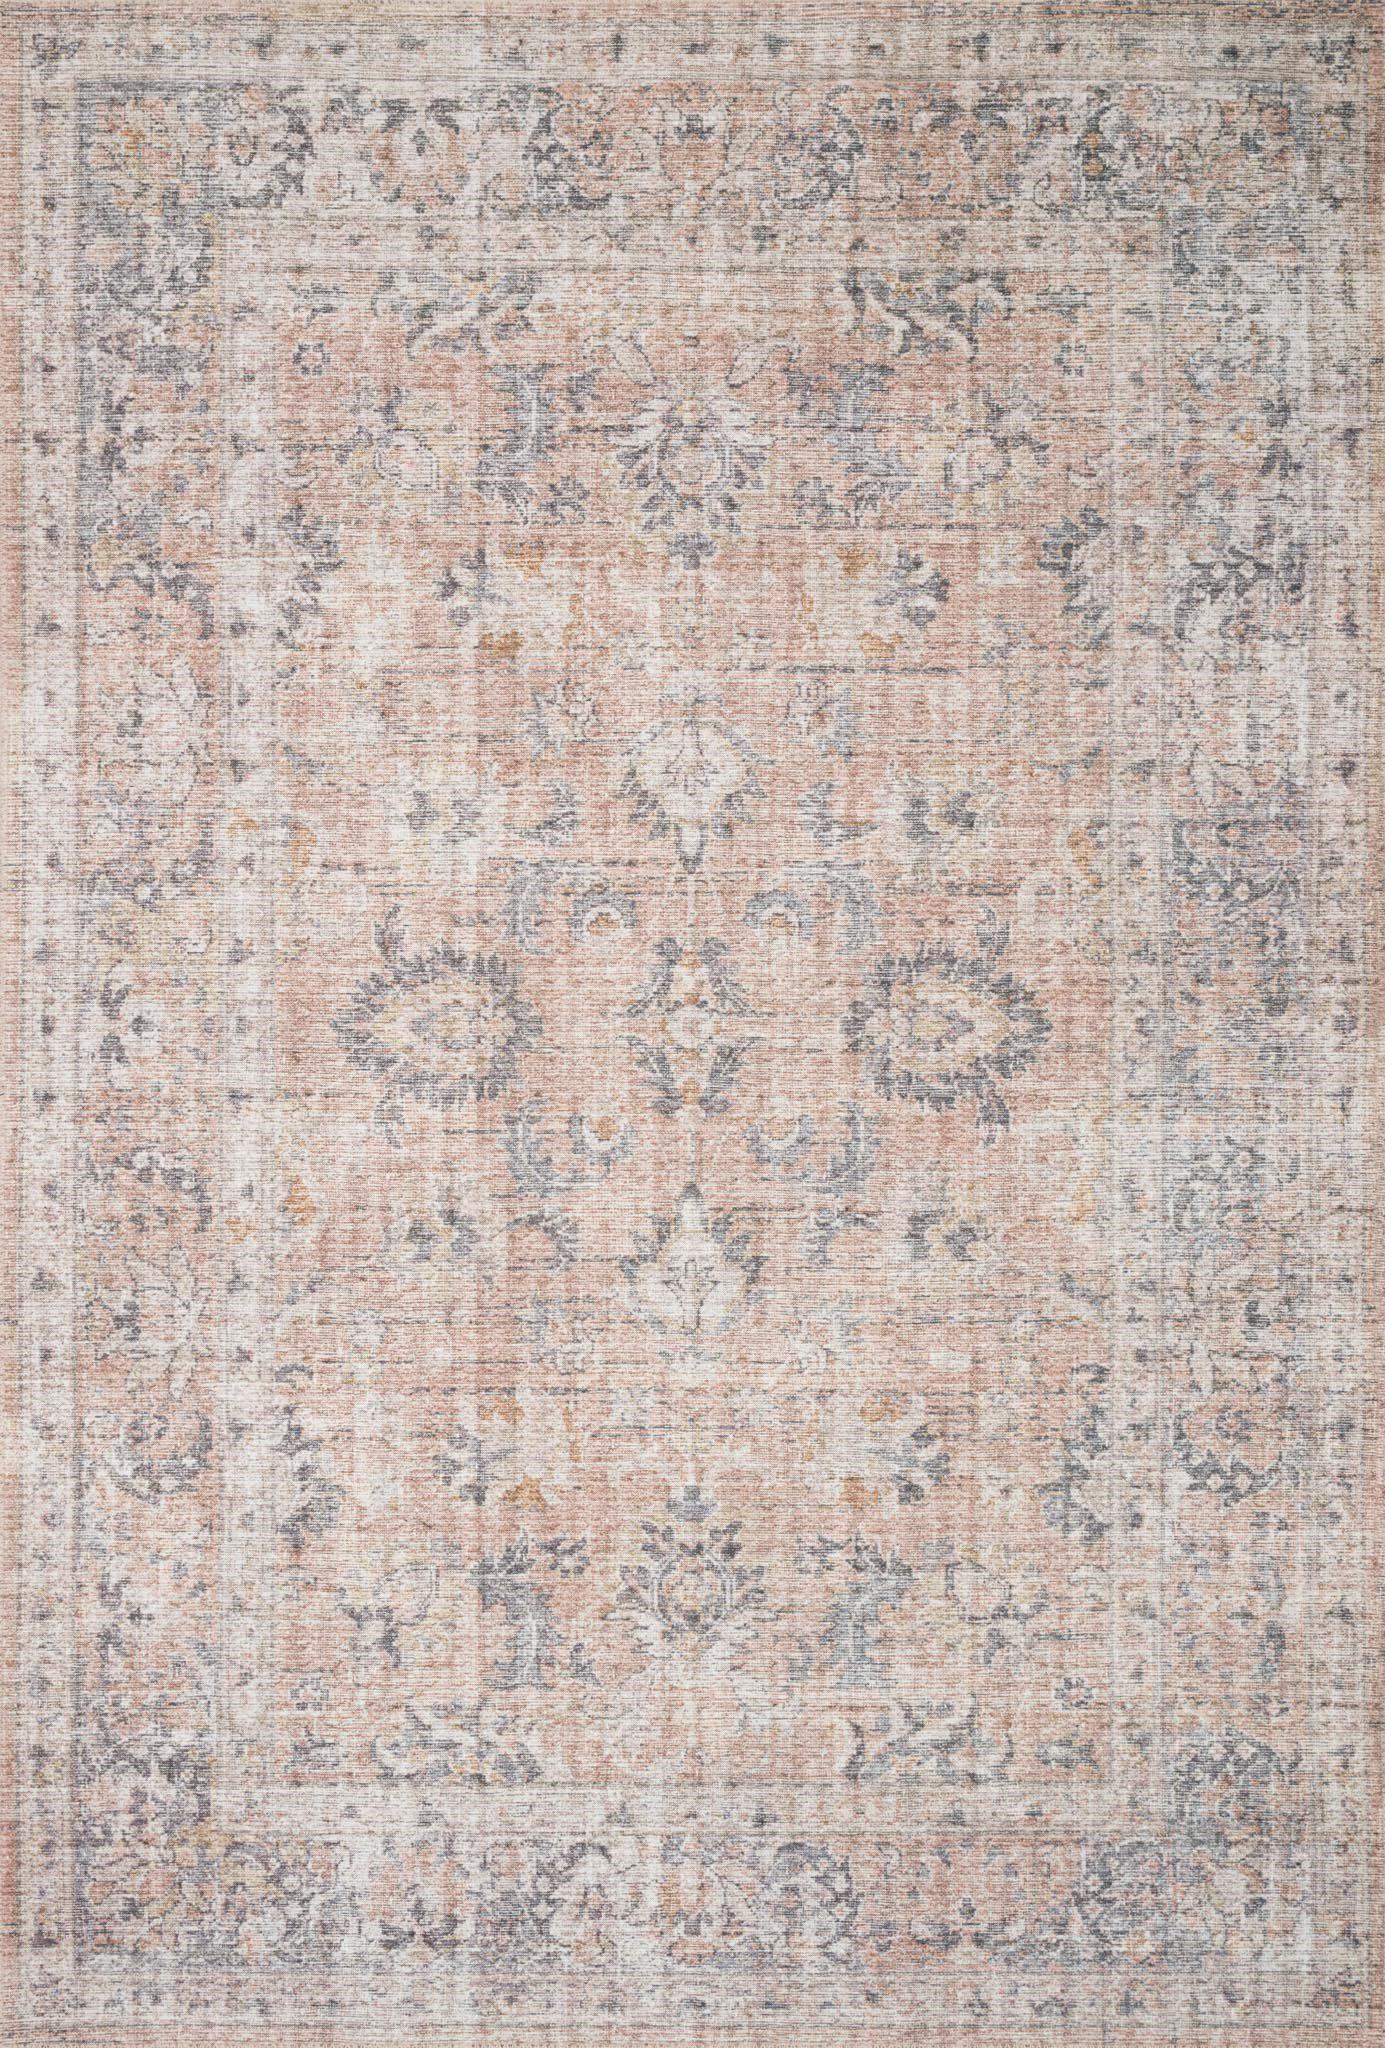 "Skye SKY-01 Blush / Grey Area Rug-Area Rug-Loloi-1'-6"" x 1'-6"" Square-The Rug Truck"